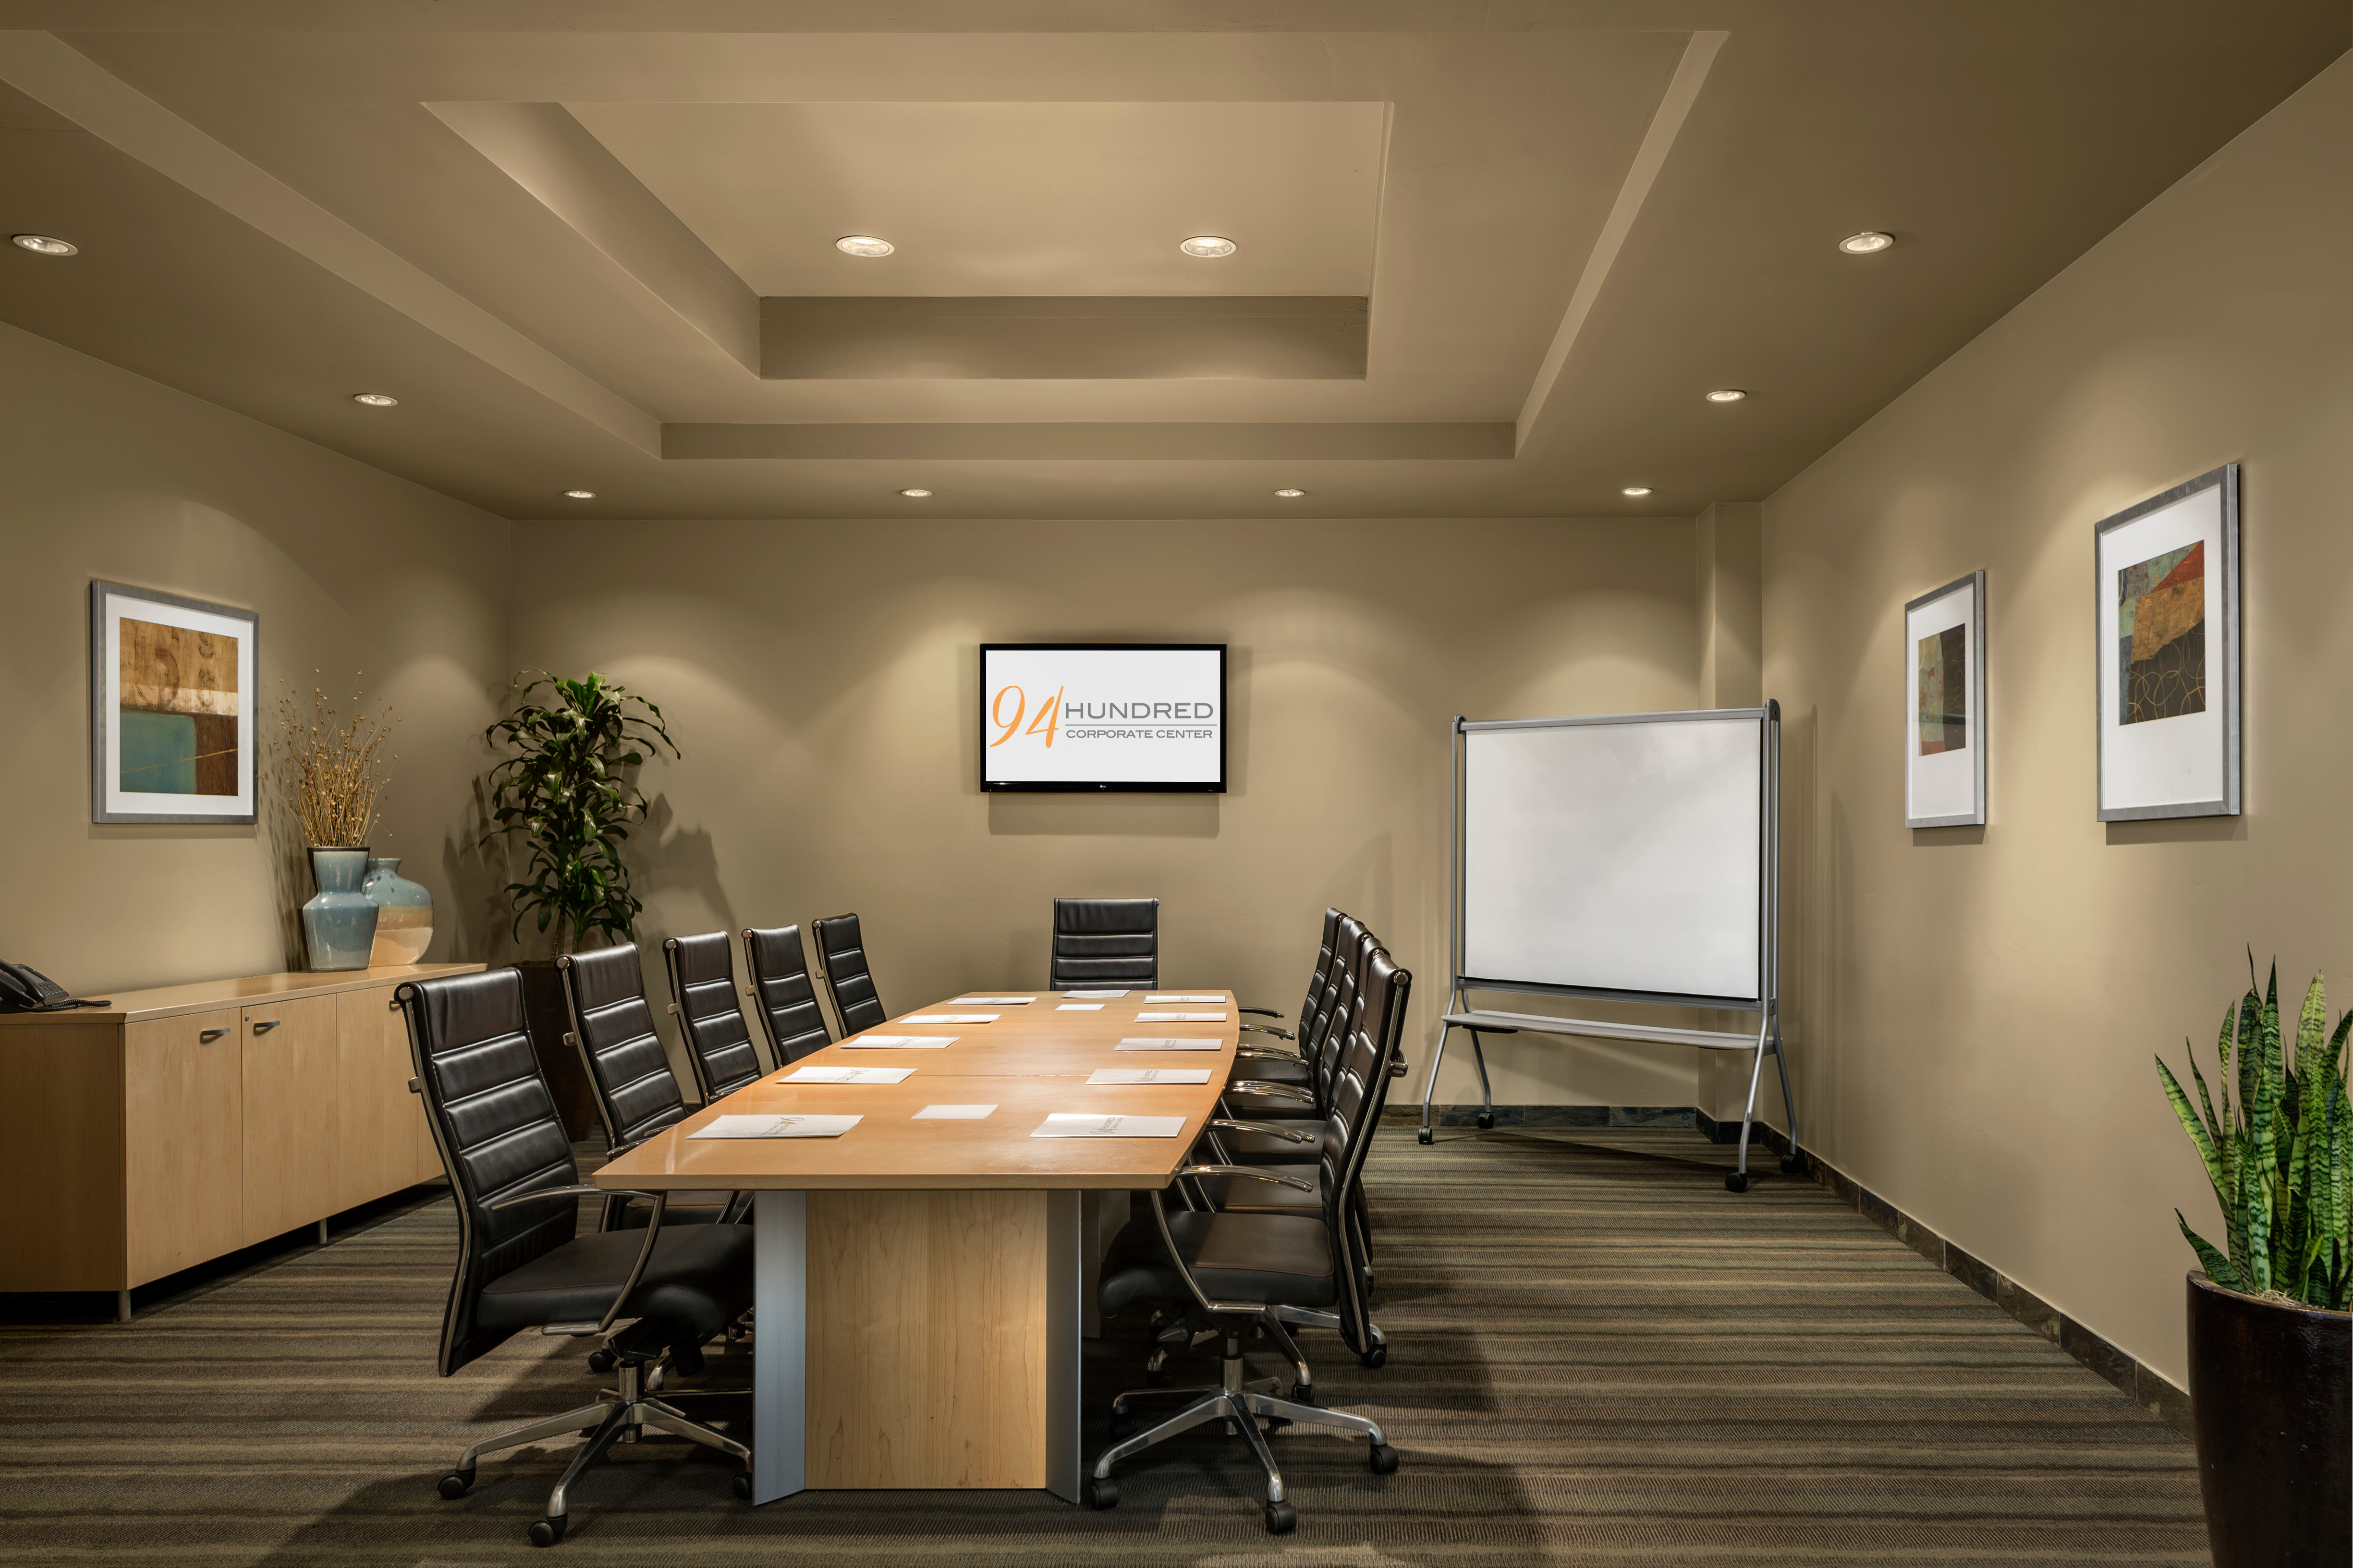 94 Hundred Corporate Center - Executive Suites in Scottsdale